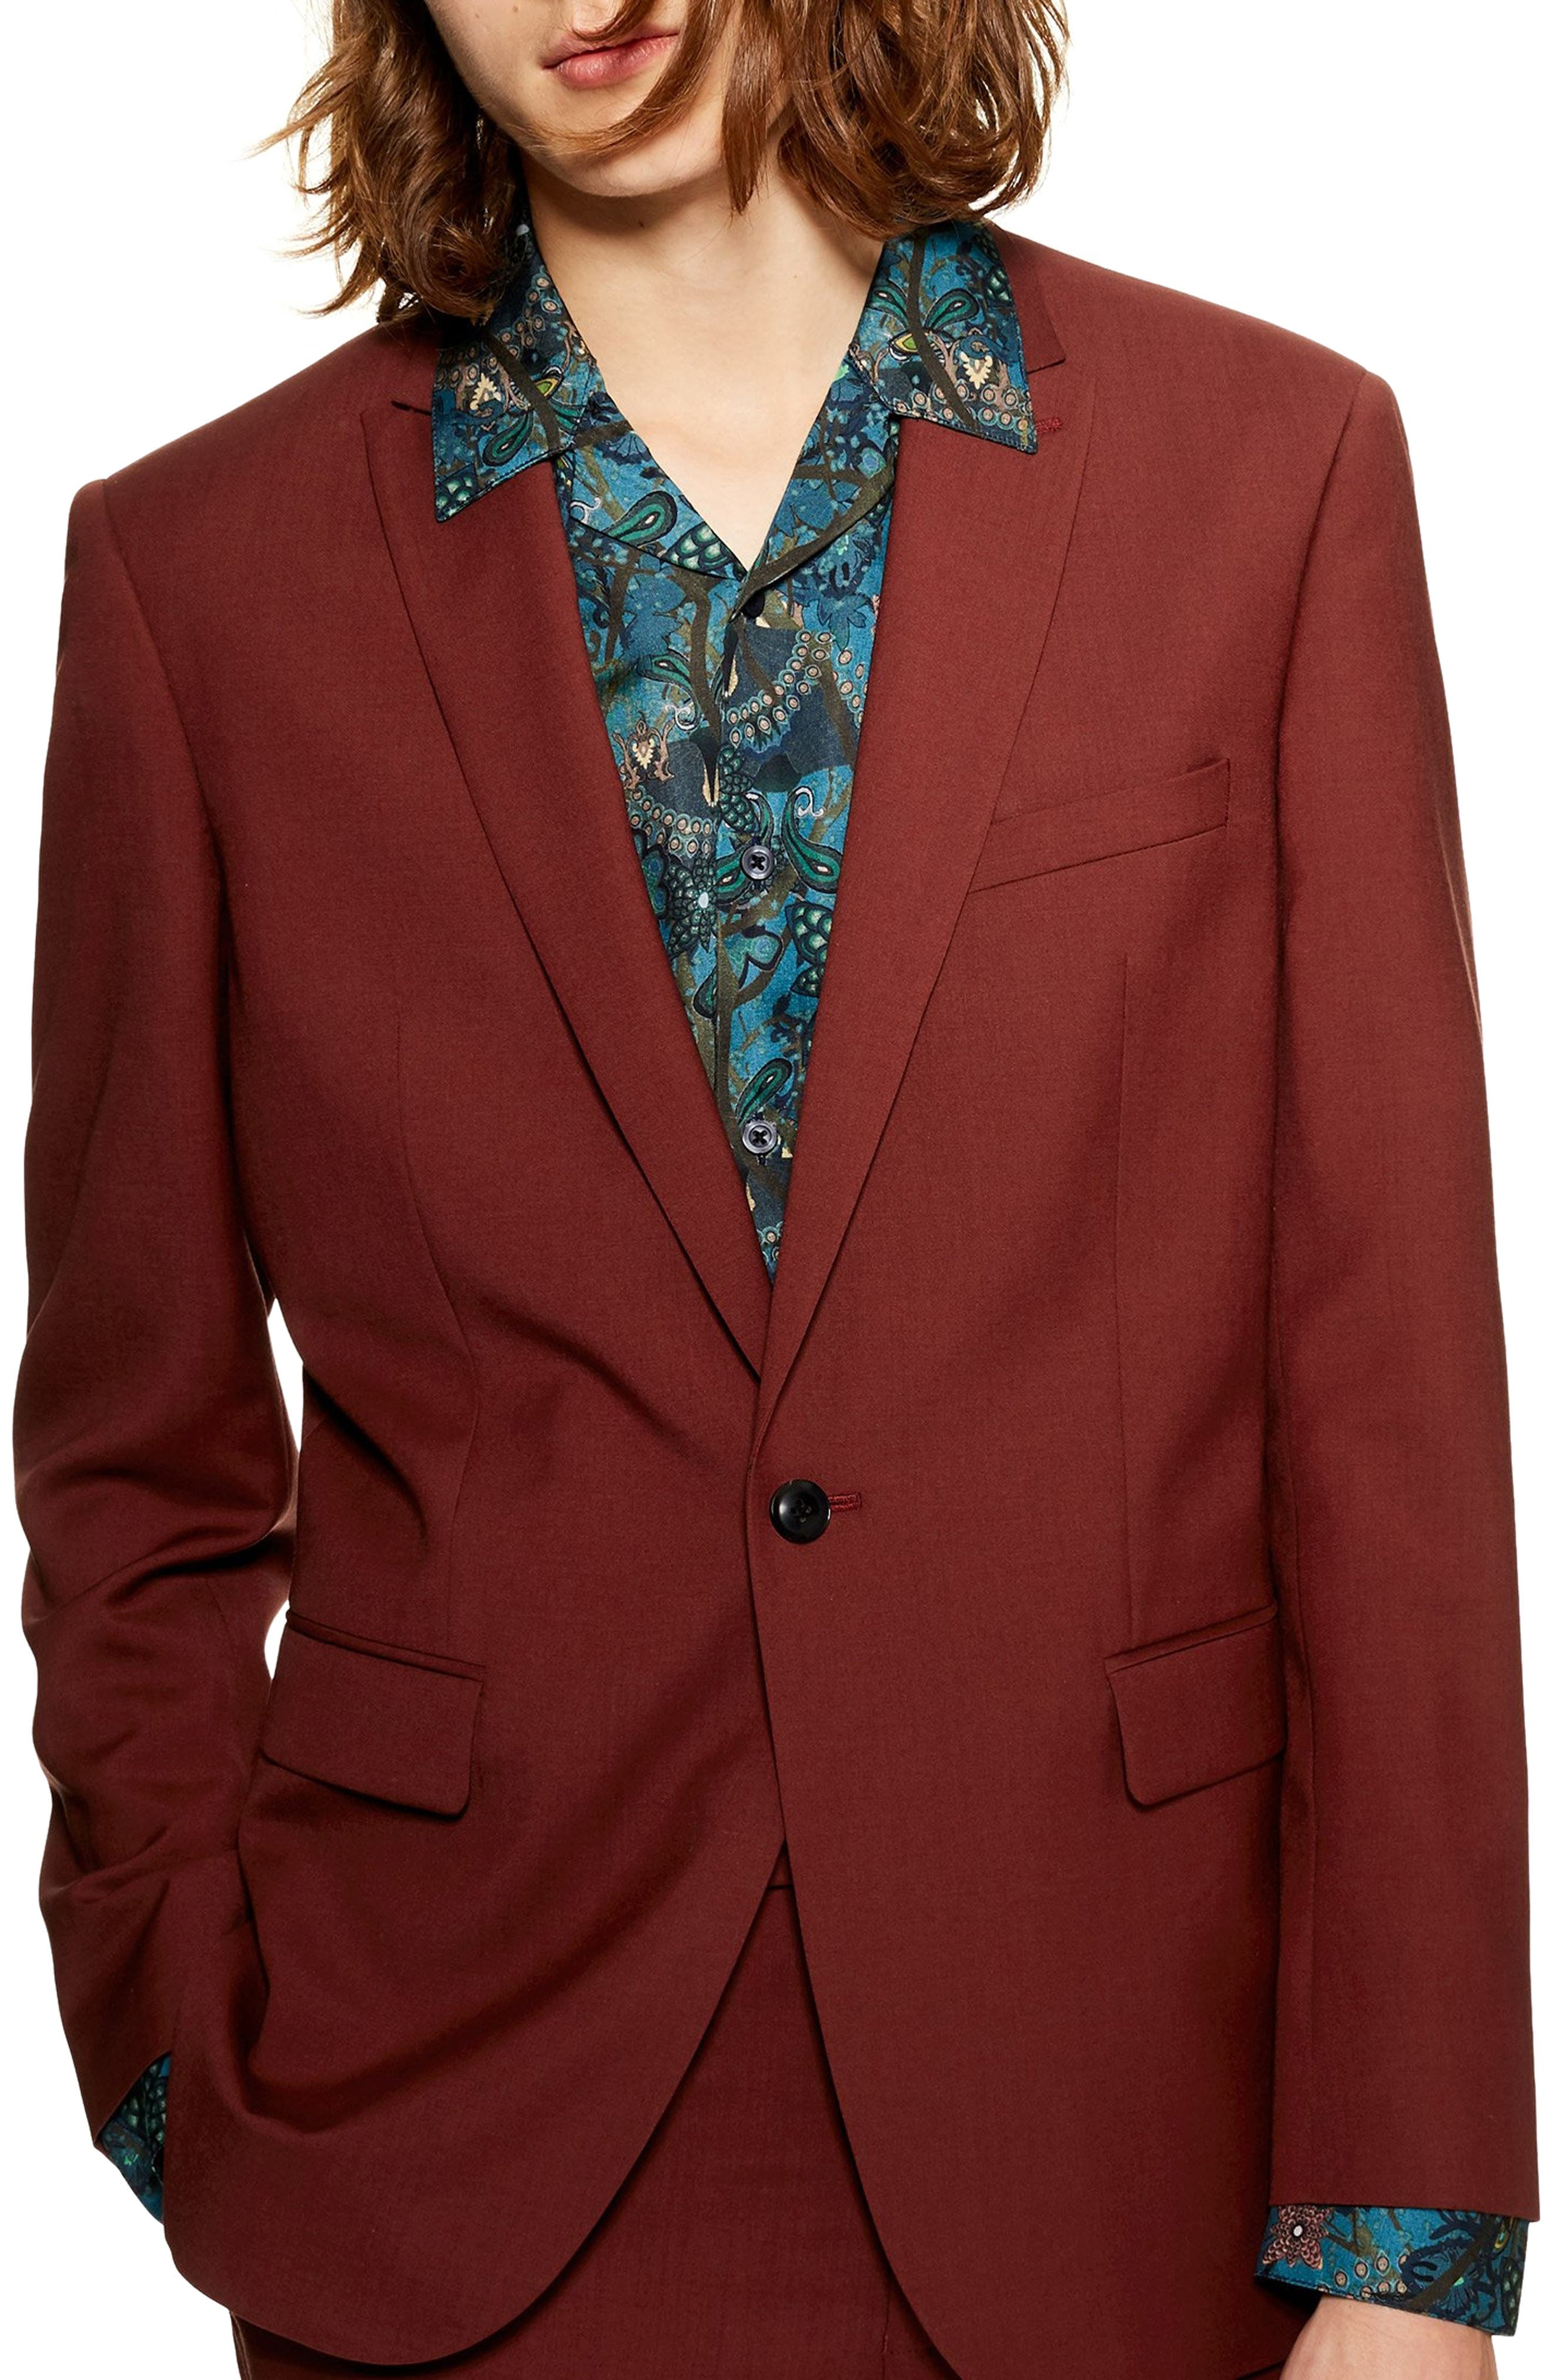 TOPMAN Casely Hayford Skinny Fit Suit Jacket in Red